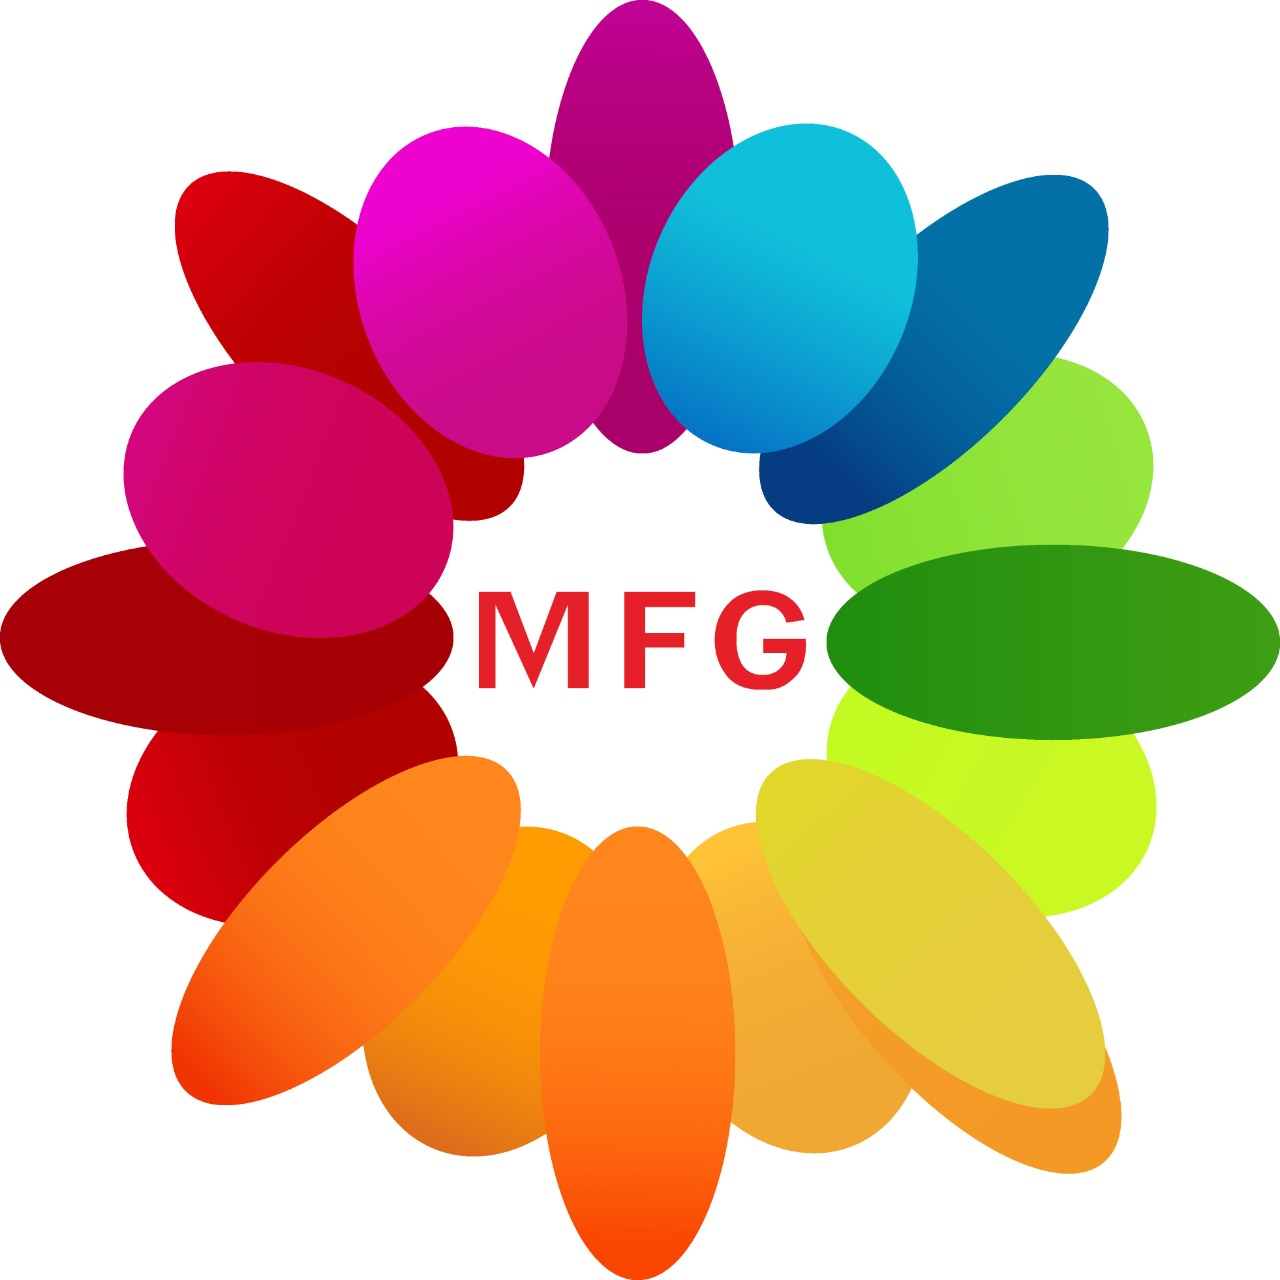 Bunch of 15 red carnation with 1 kg chocolate truffle heart shape cake with 6 inch white teddy bear